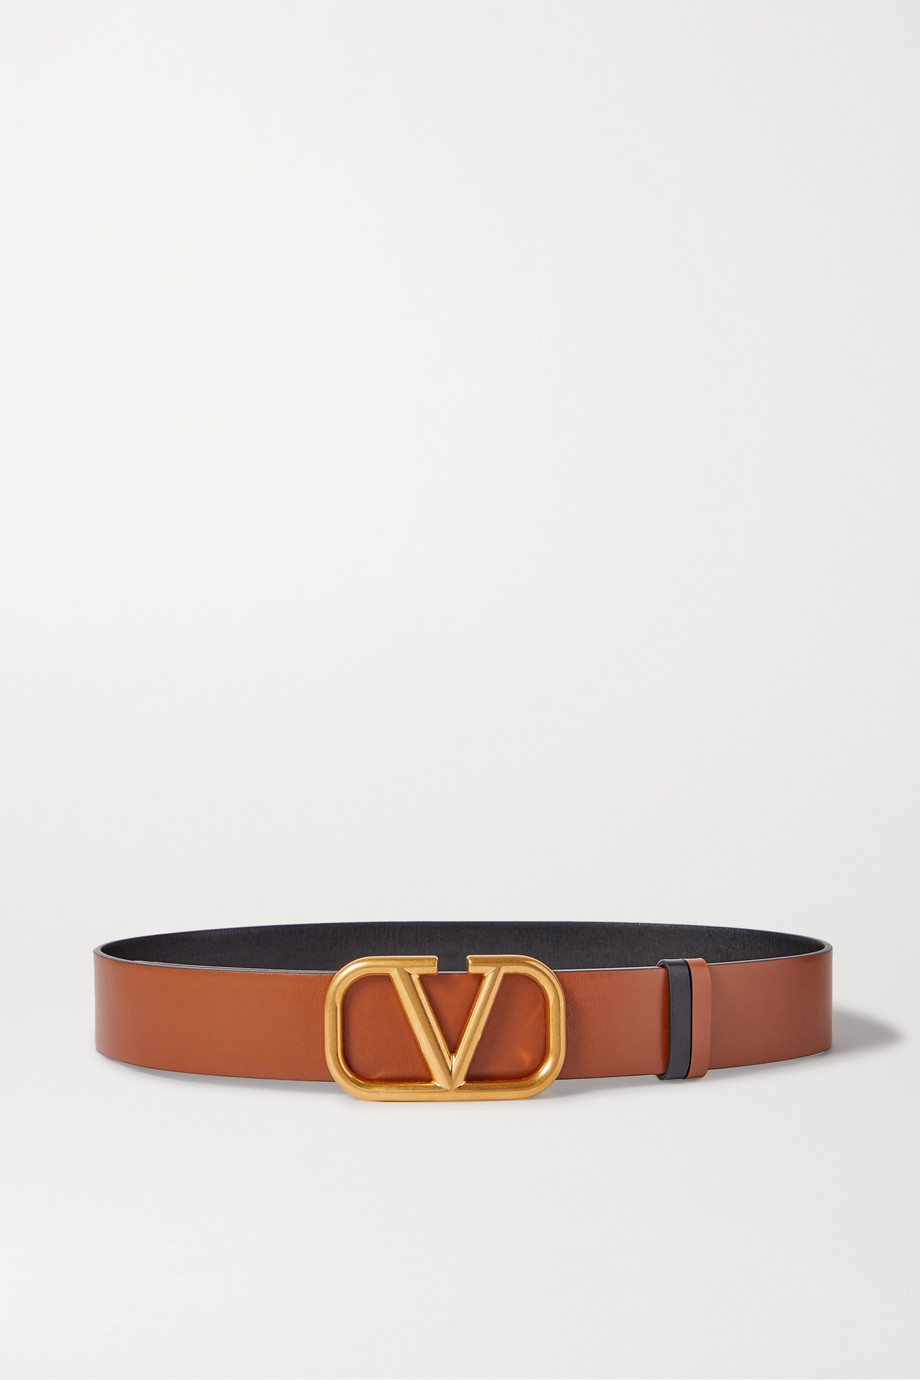 Valentino Valentino Garavani VLOGO reversible leather belt